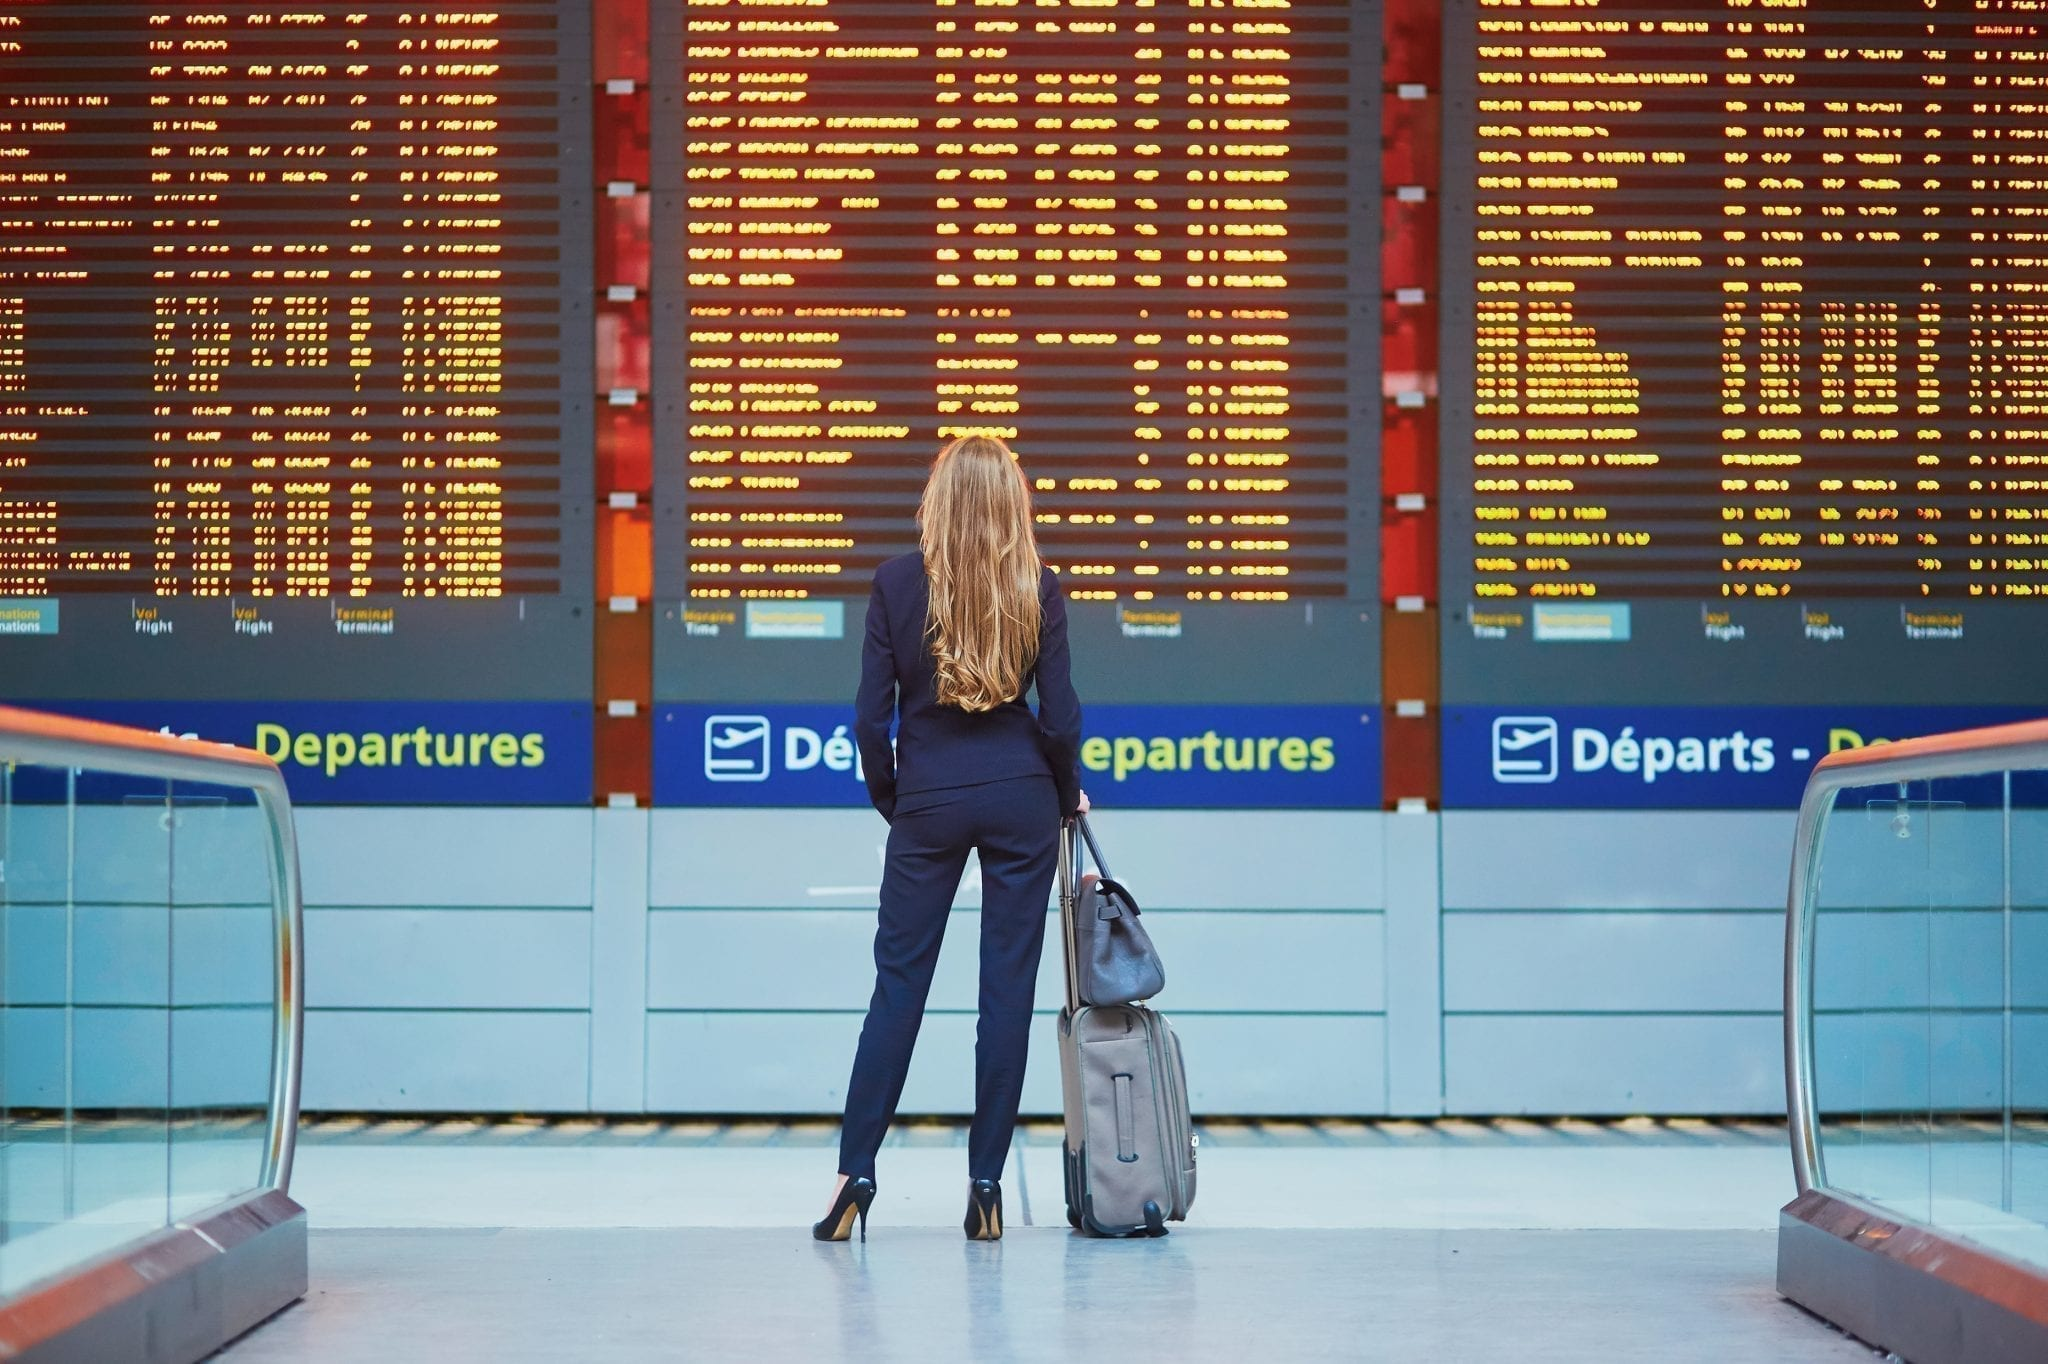 Woman with long blond hair standing in front of departures board in an airport with all travel essentials for the plane in her bag